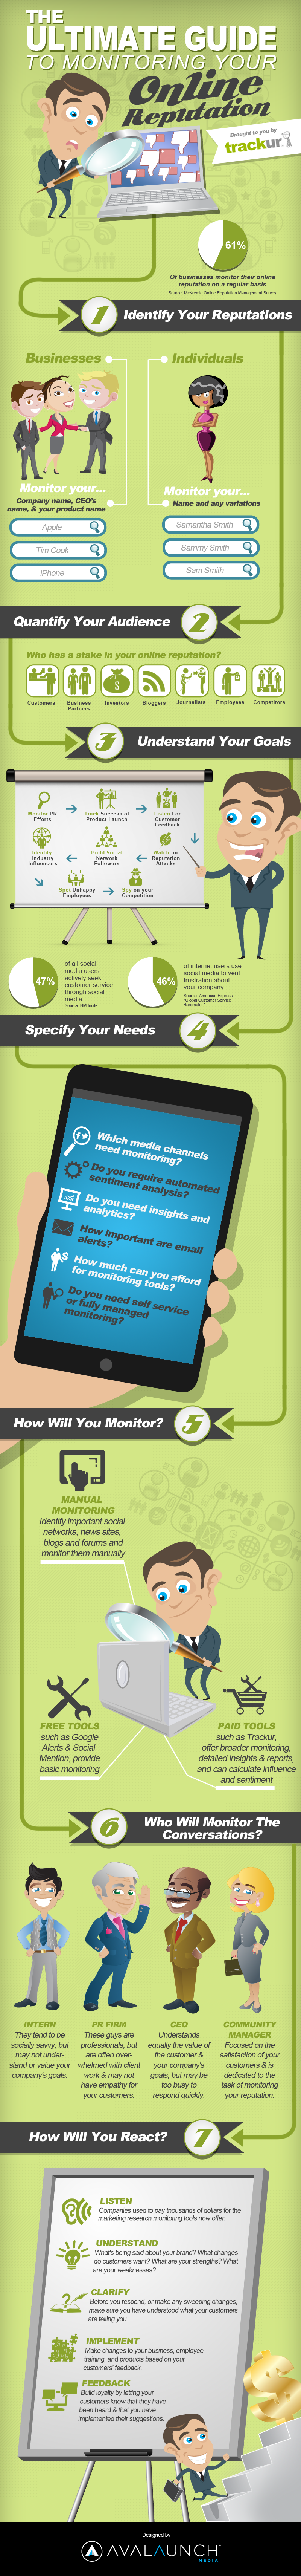 Ultimate Guide to Monitoring Your Online Reputation [Infographic]